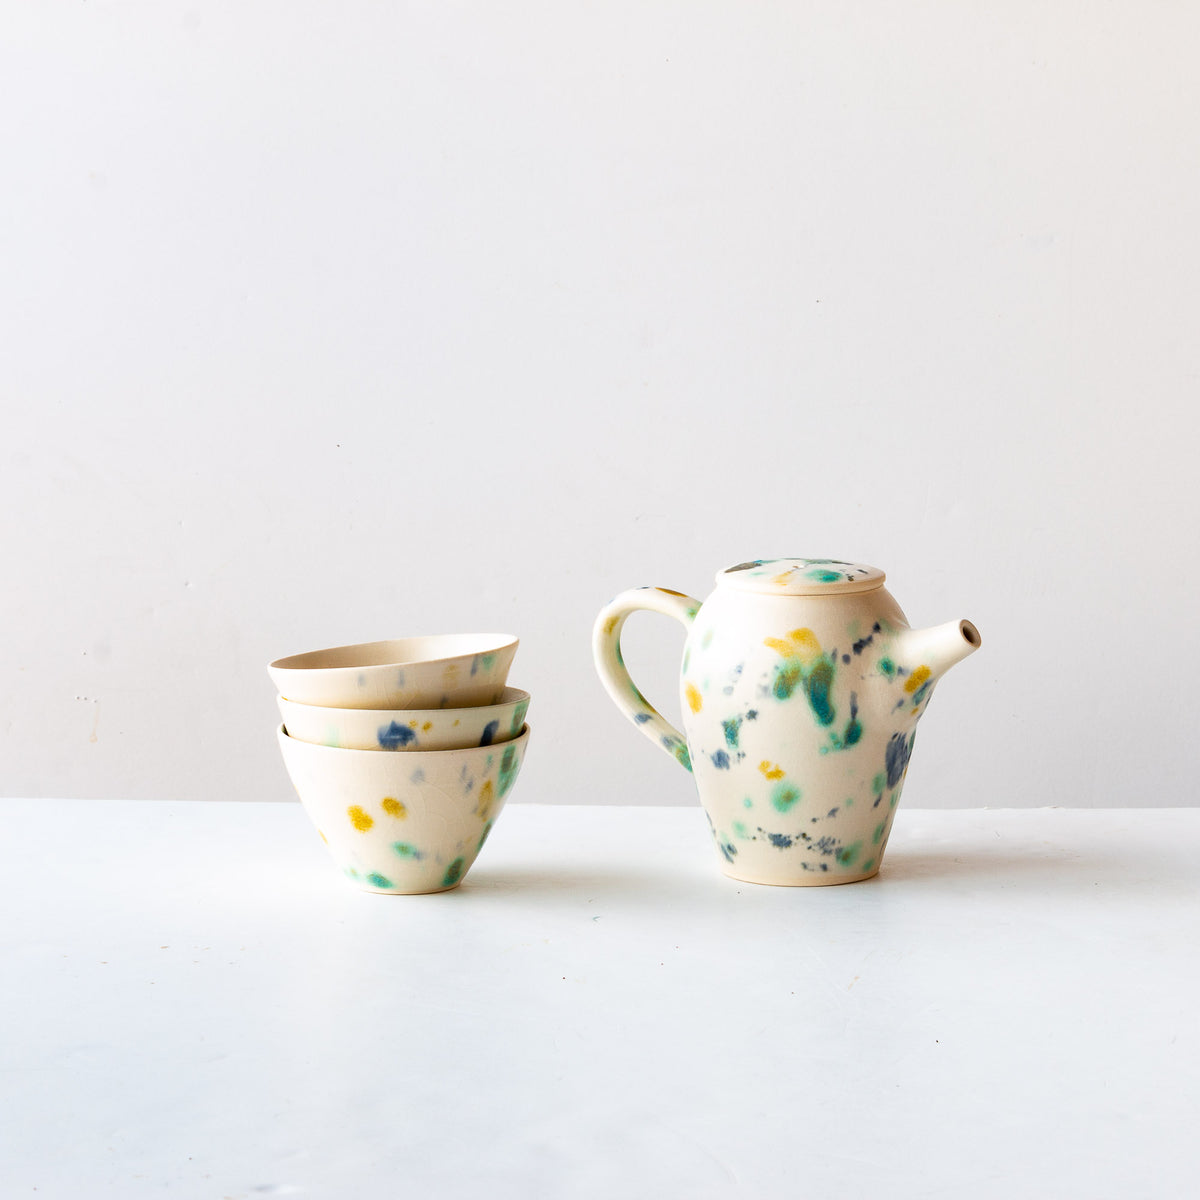 Hanabira - Small Handmade Ceramic Teapot & Teacups - Sold by Chic & Basta